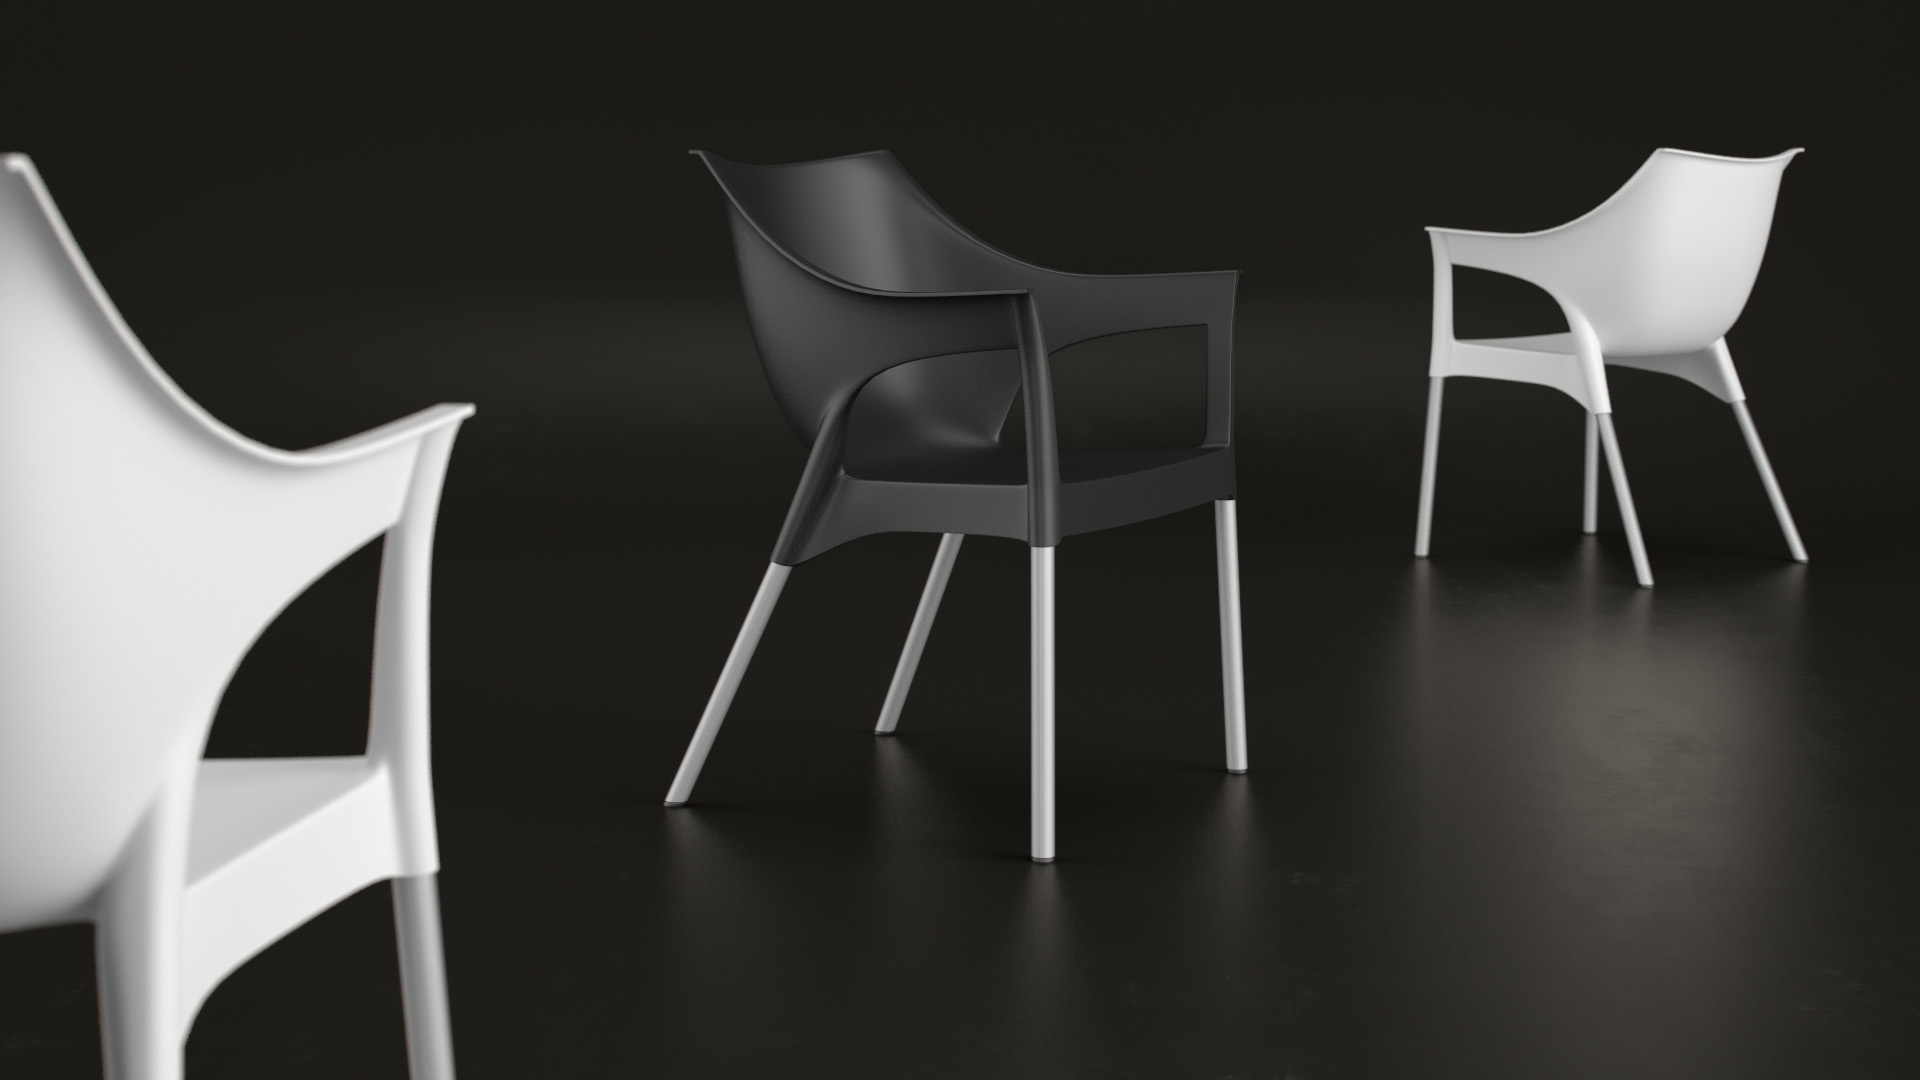 Pole_Chair_BlackSet_01_V1.01_0005